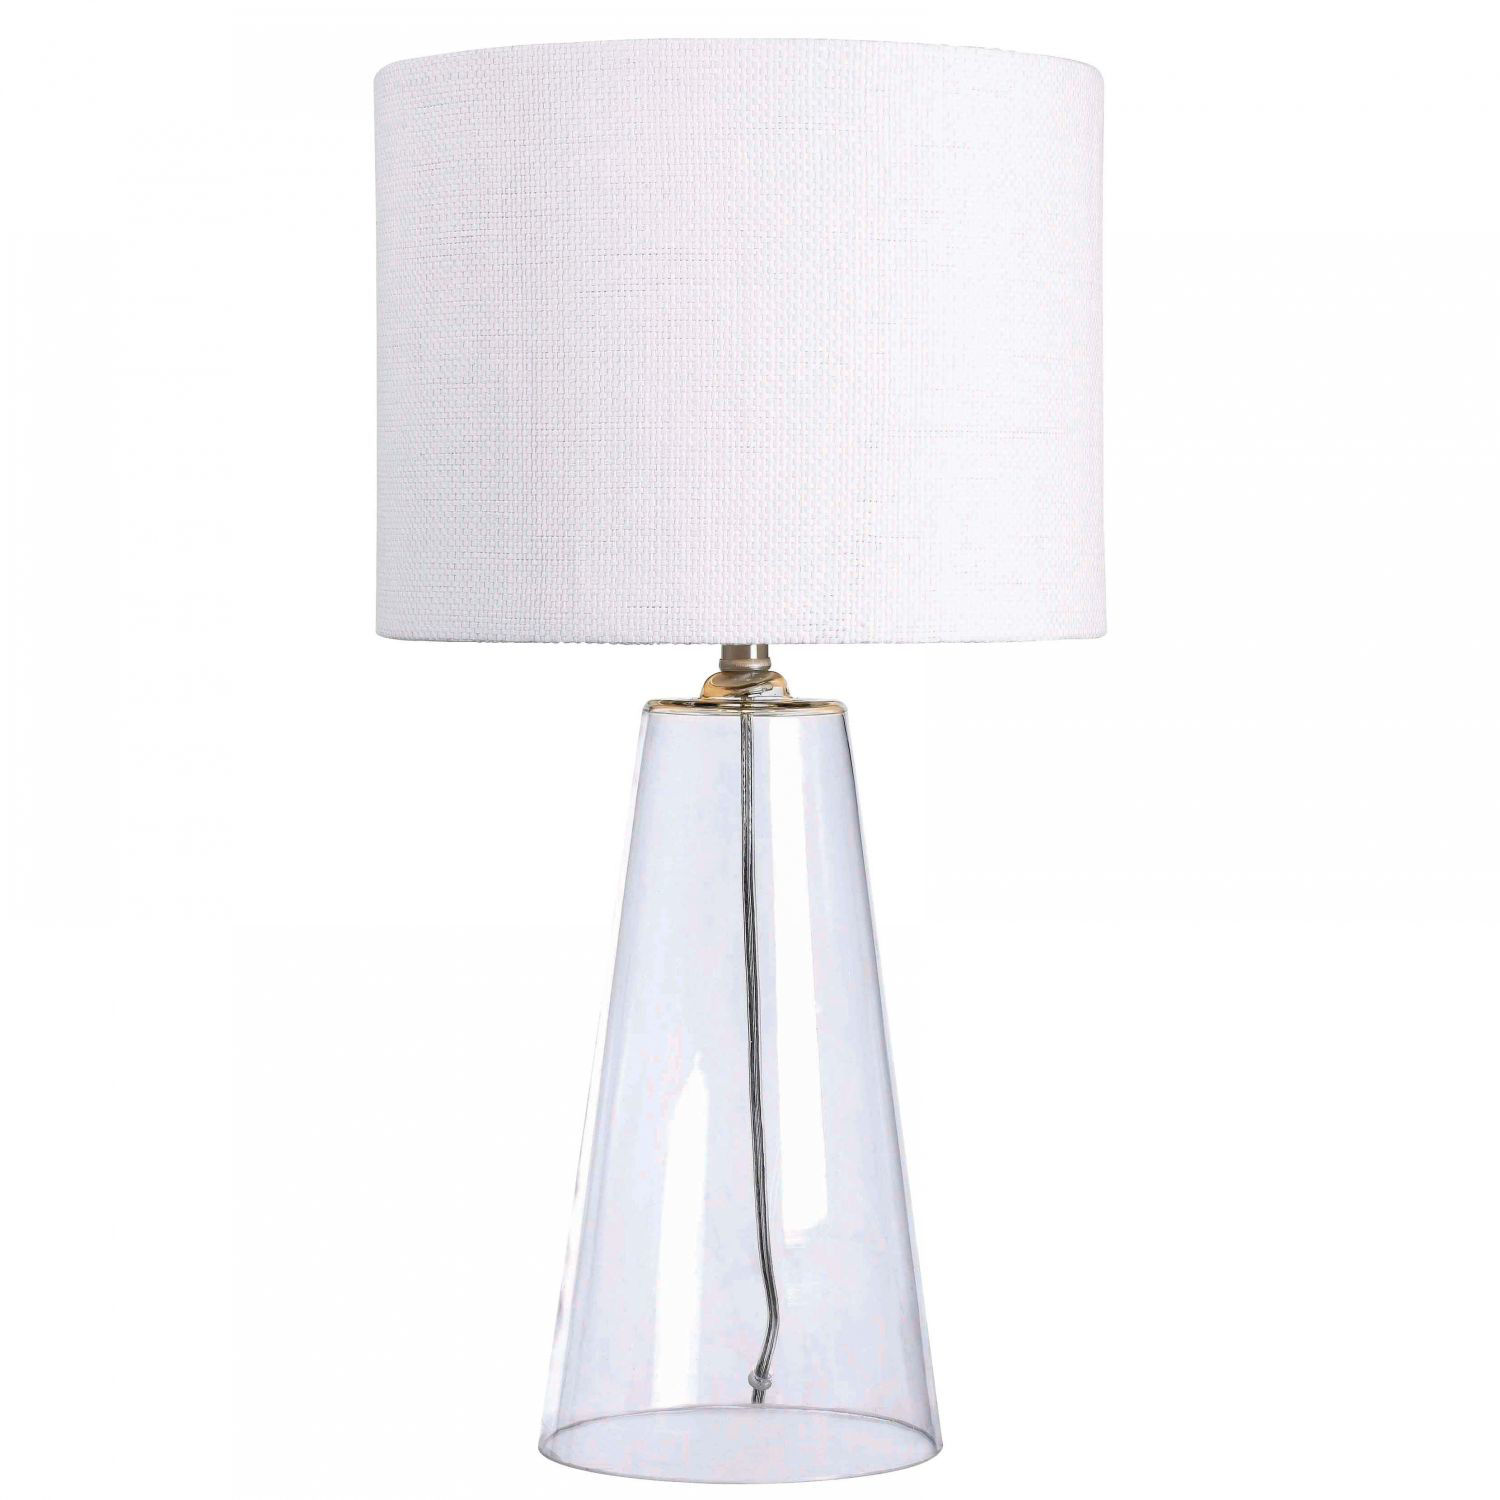 Picture of Boda Clear Glass Lamp